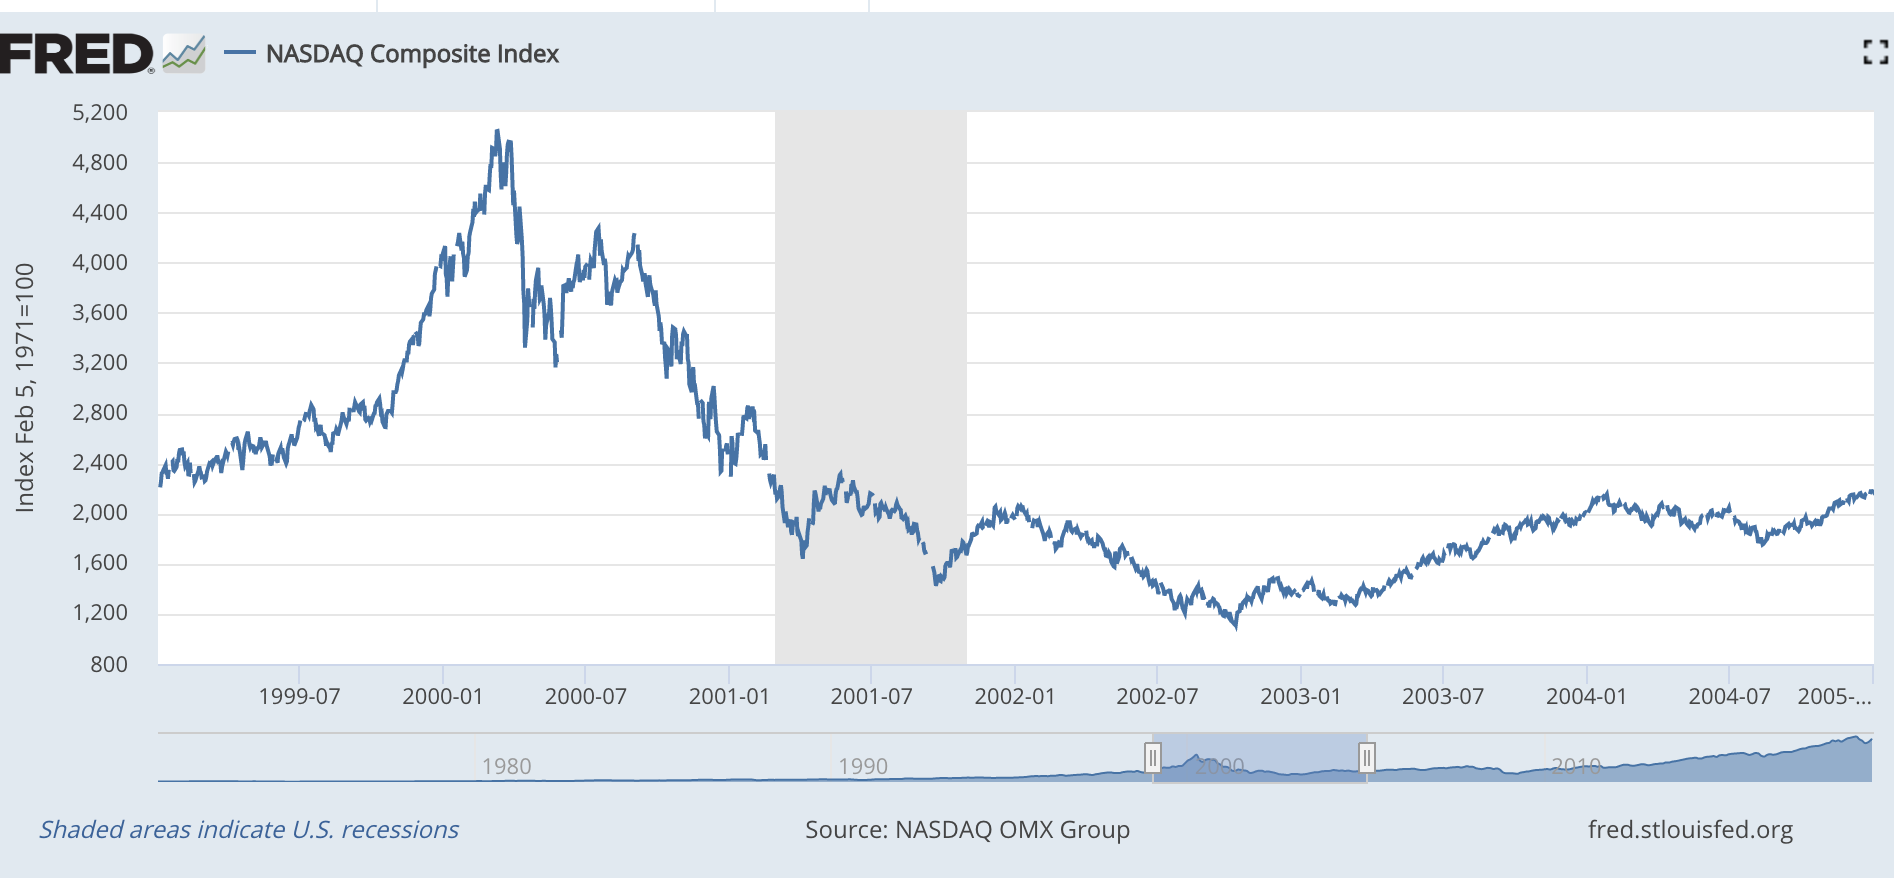 The Nasdaq (also known as the technology index) 1999-2005